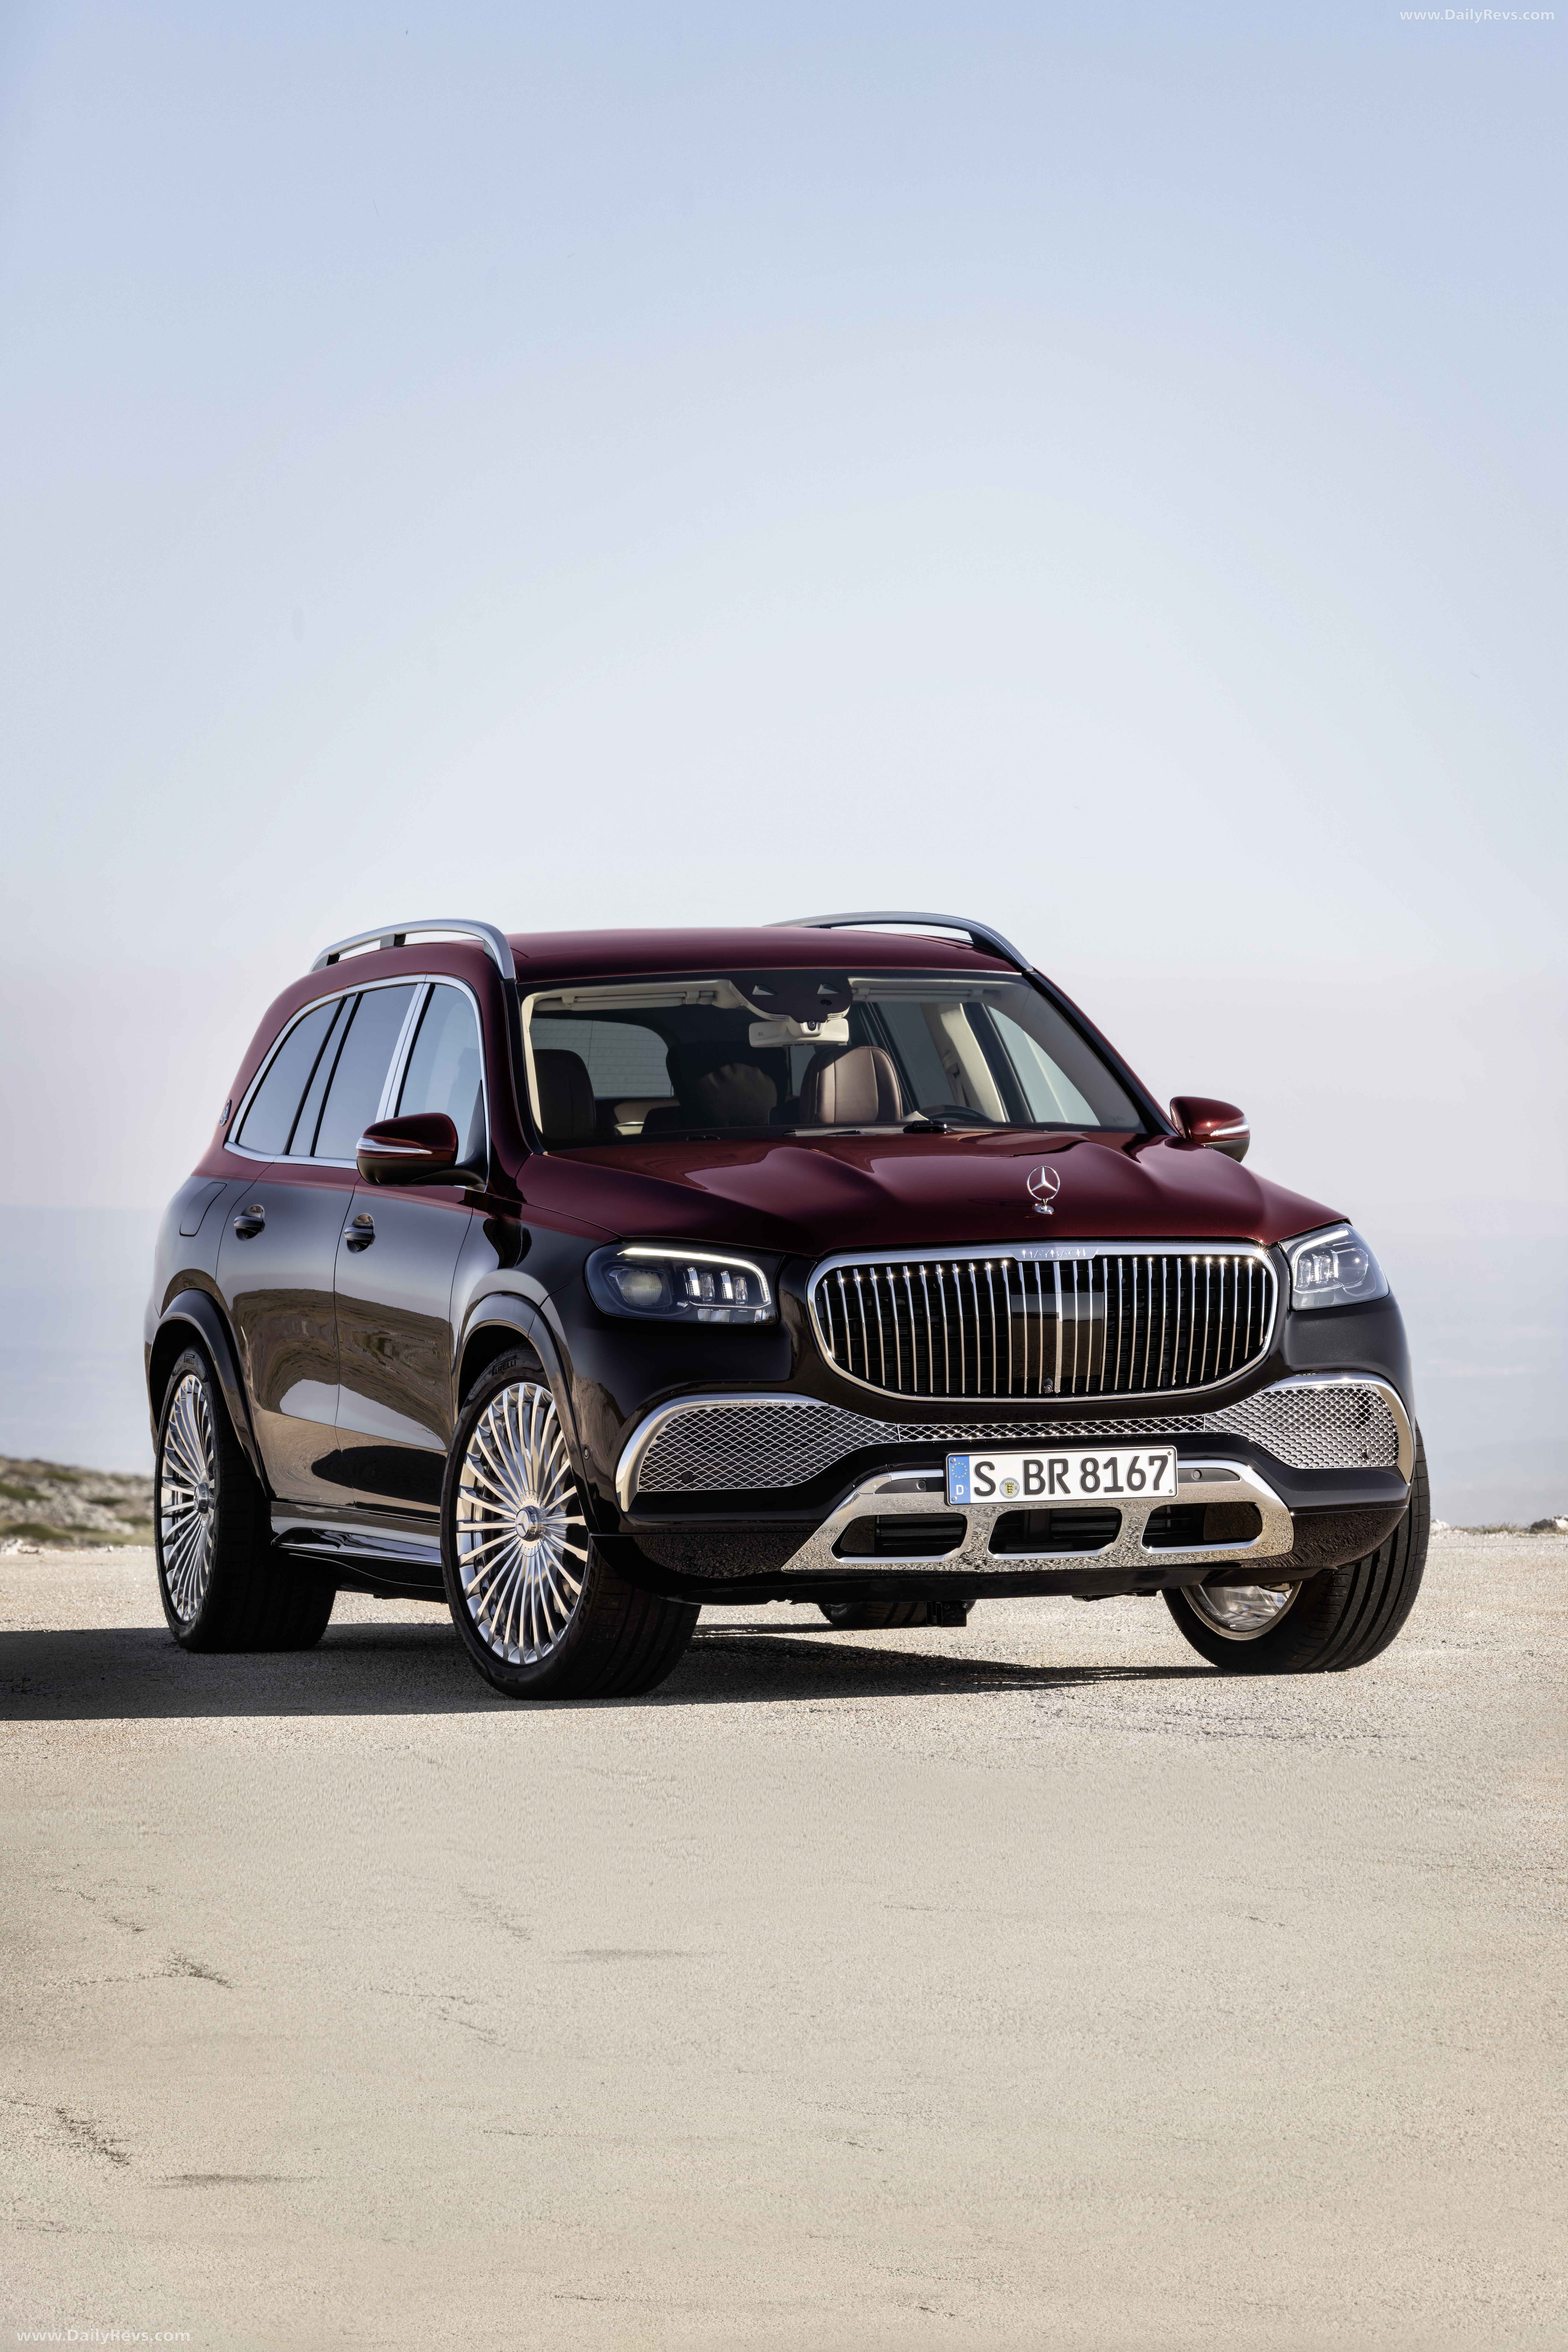 2021 mercedes-benz gls 600 maybach - hd pictures, videos